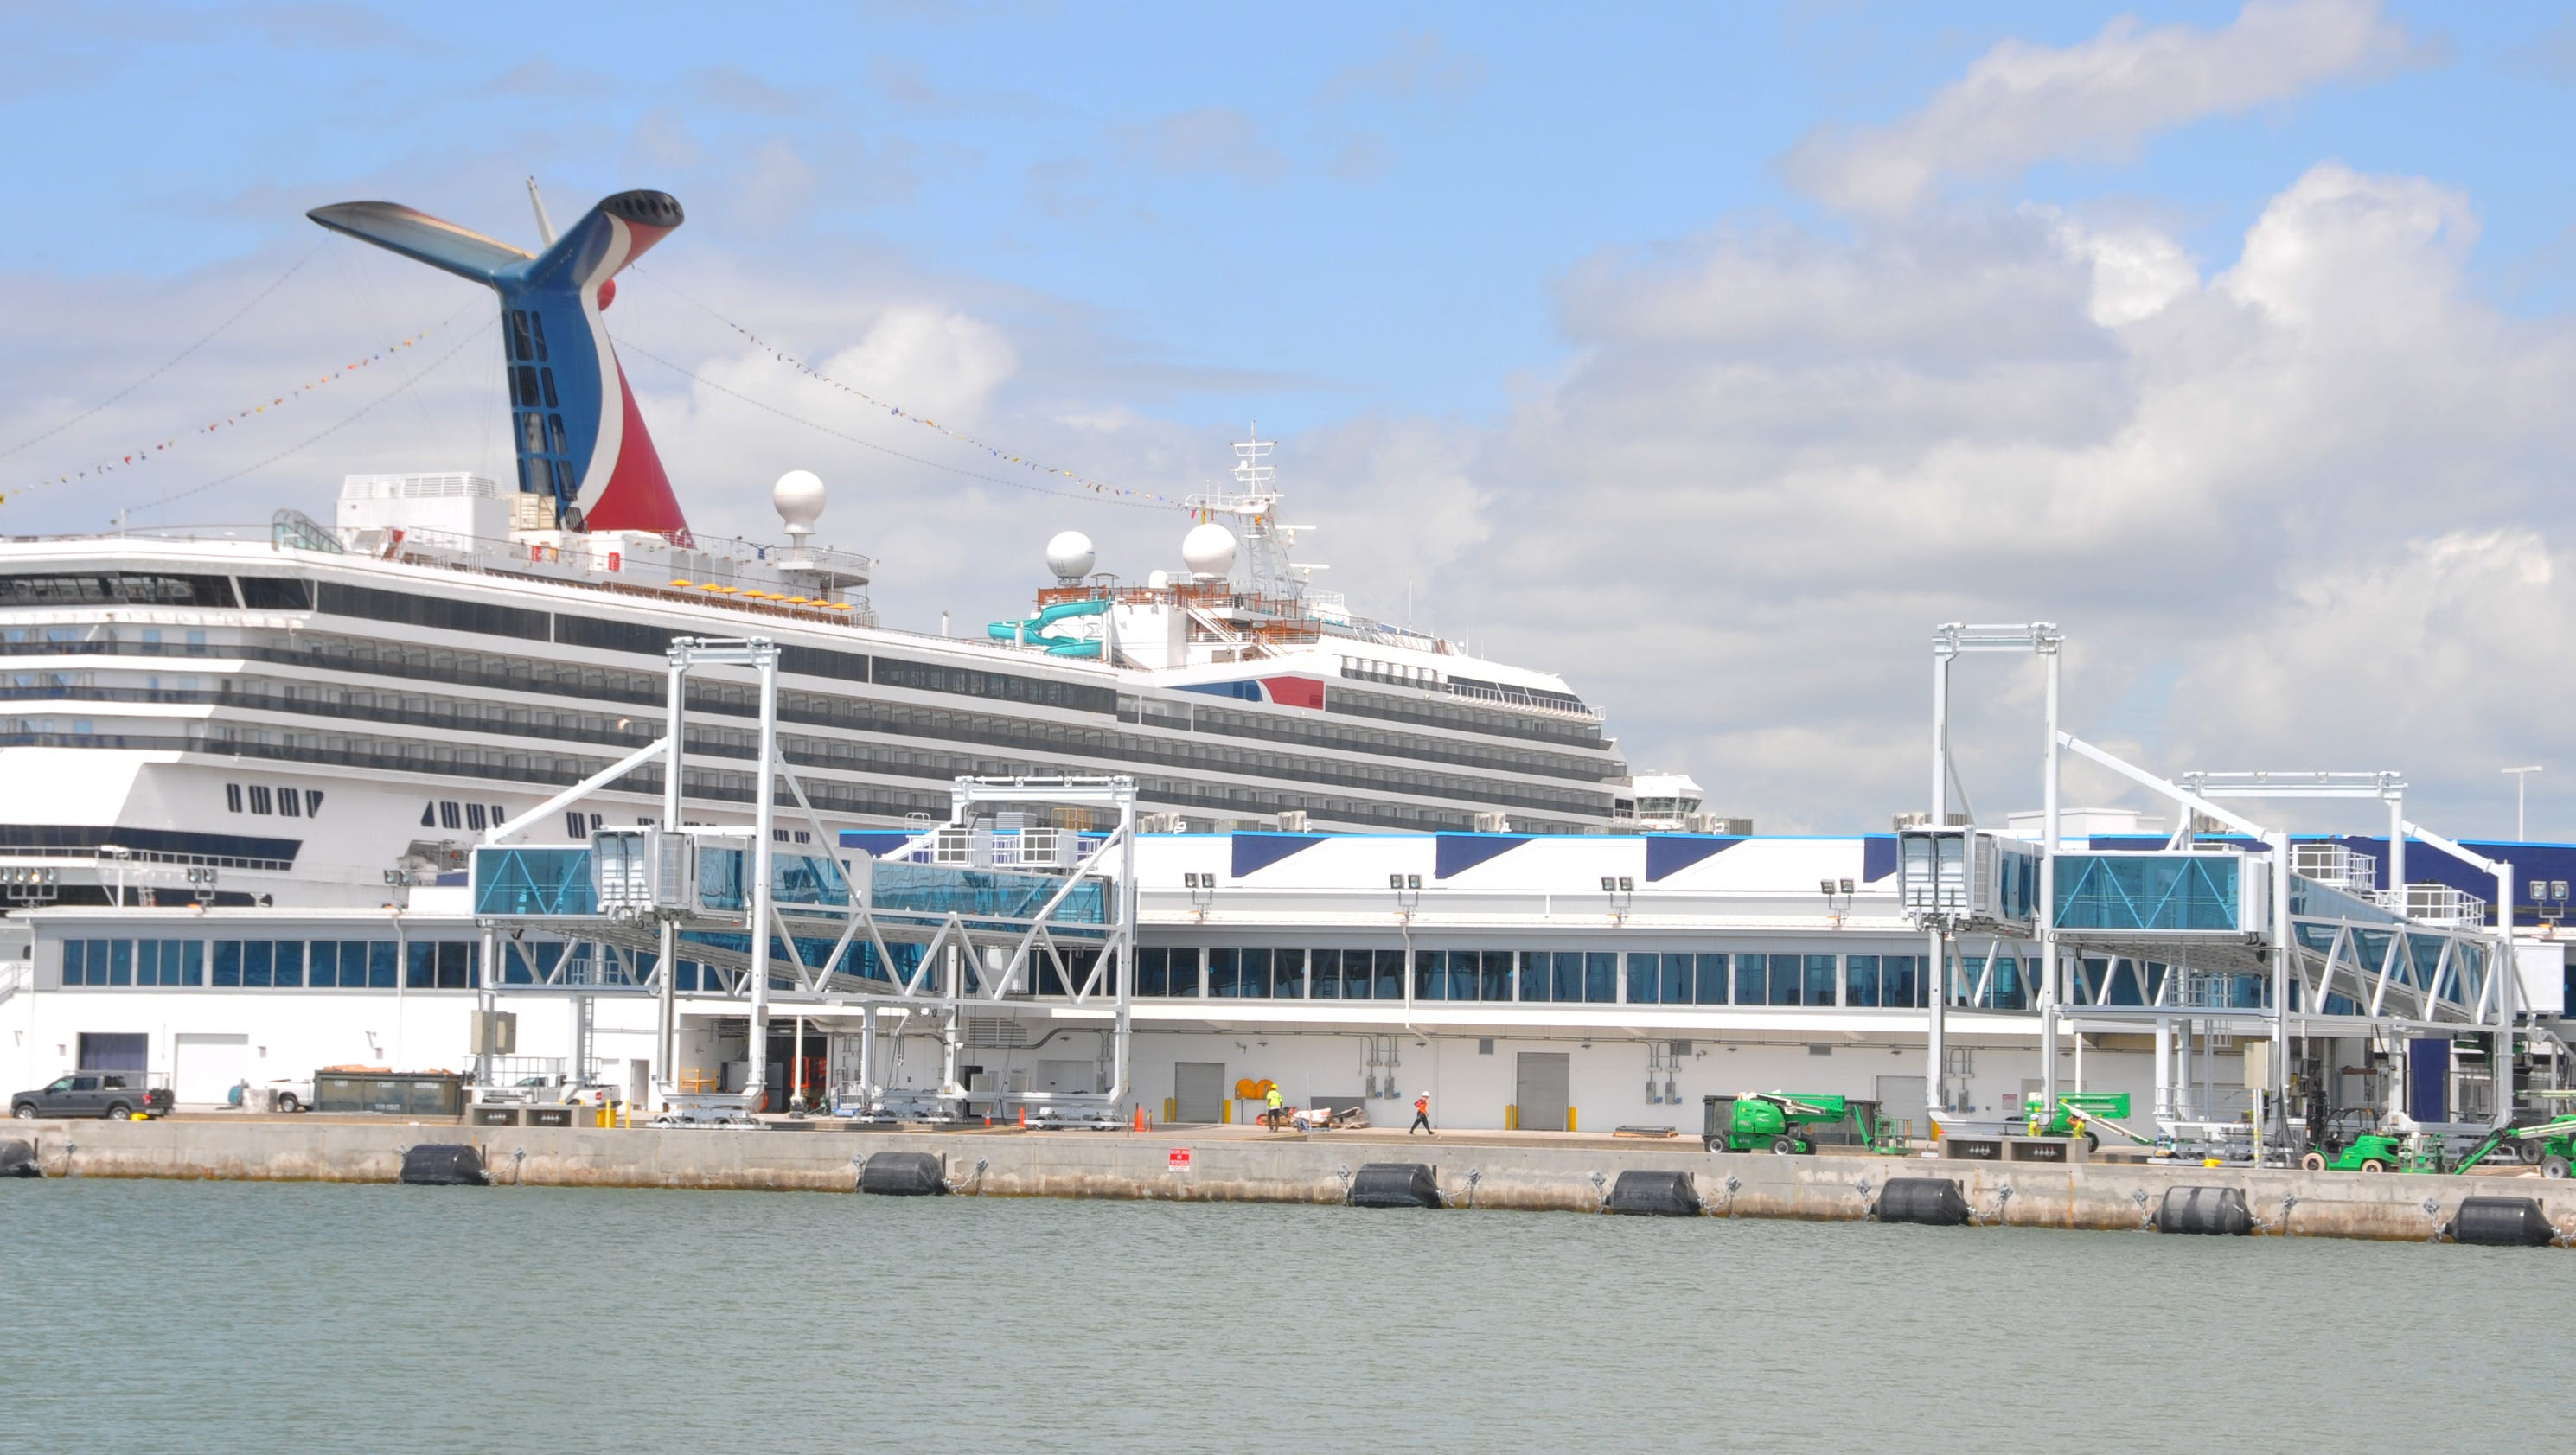 Last Minute Cruise Deals >> Last Minute Cruise Deals From Florida Port Canaveral Best